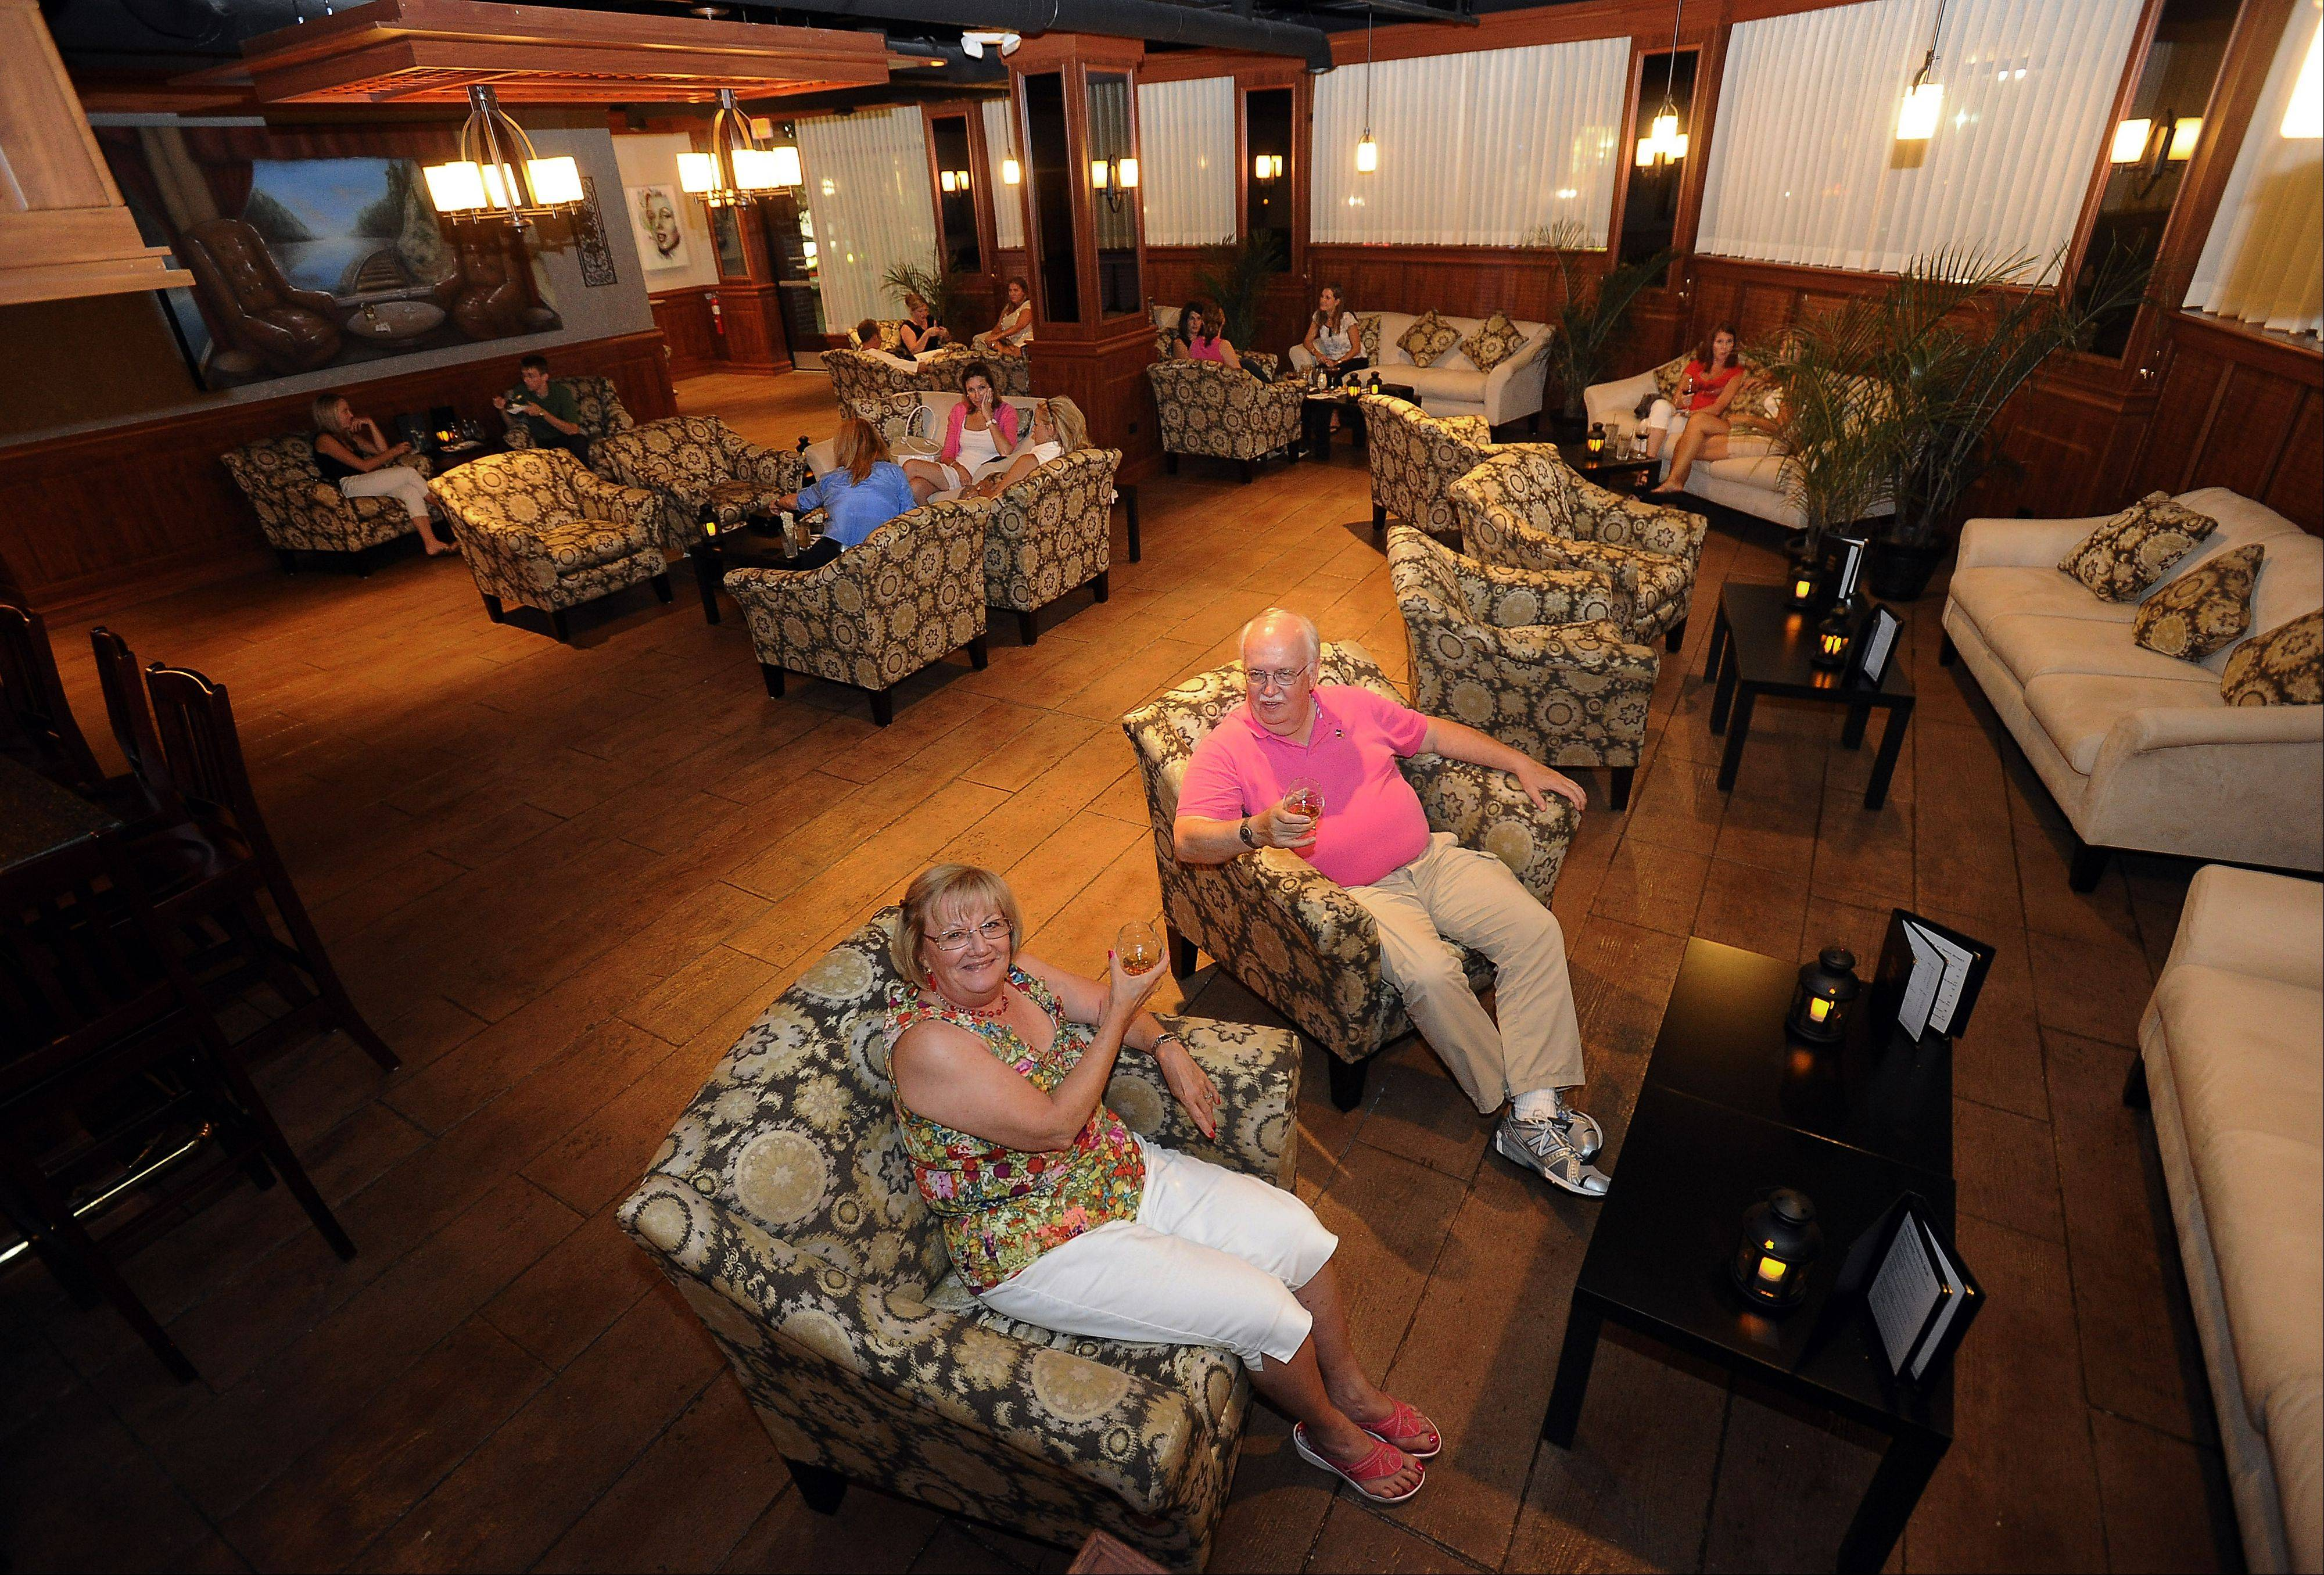 Wayne and Karin Karge, of Palatine, enjoy a drink in the conversation-friendly lounge at Smith Street Station in Palatine.